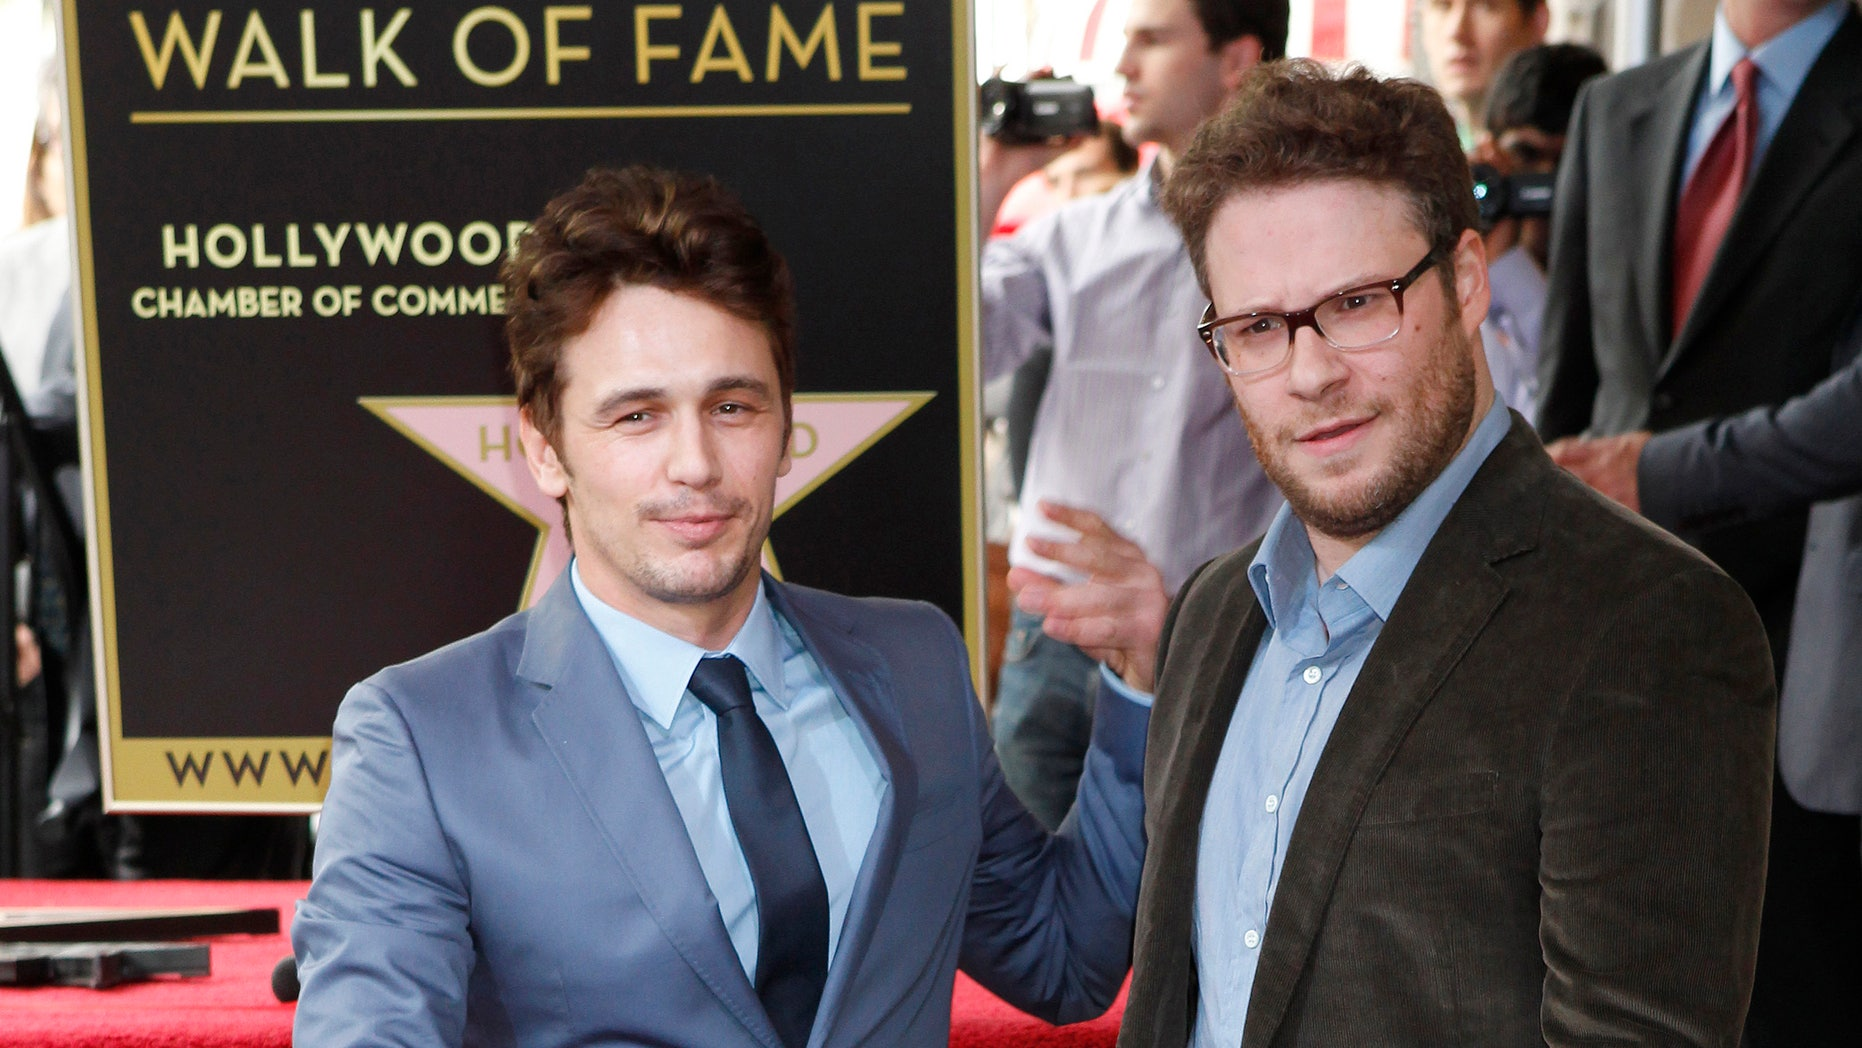 March 7, 2013. Actor James Franco (L) poses with his newly unveiled star on the Hollywood Walk of Fame, with actor Seth Rogen.